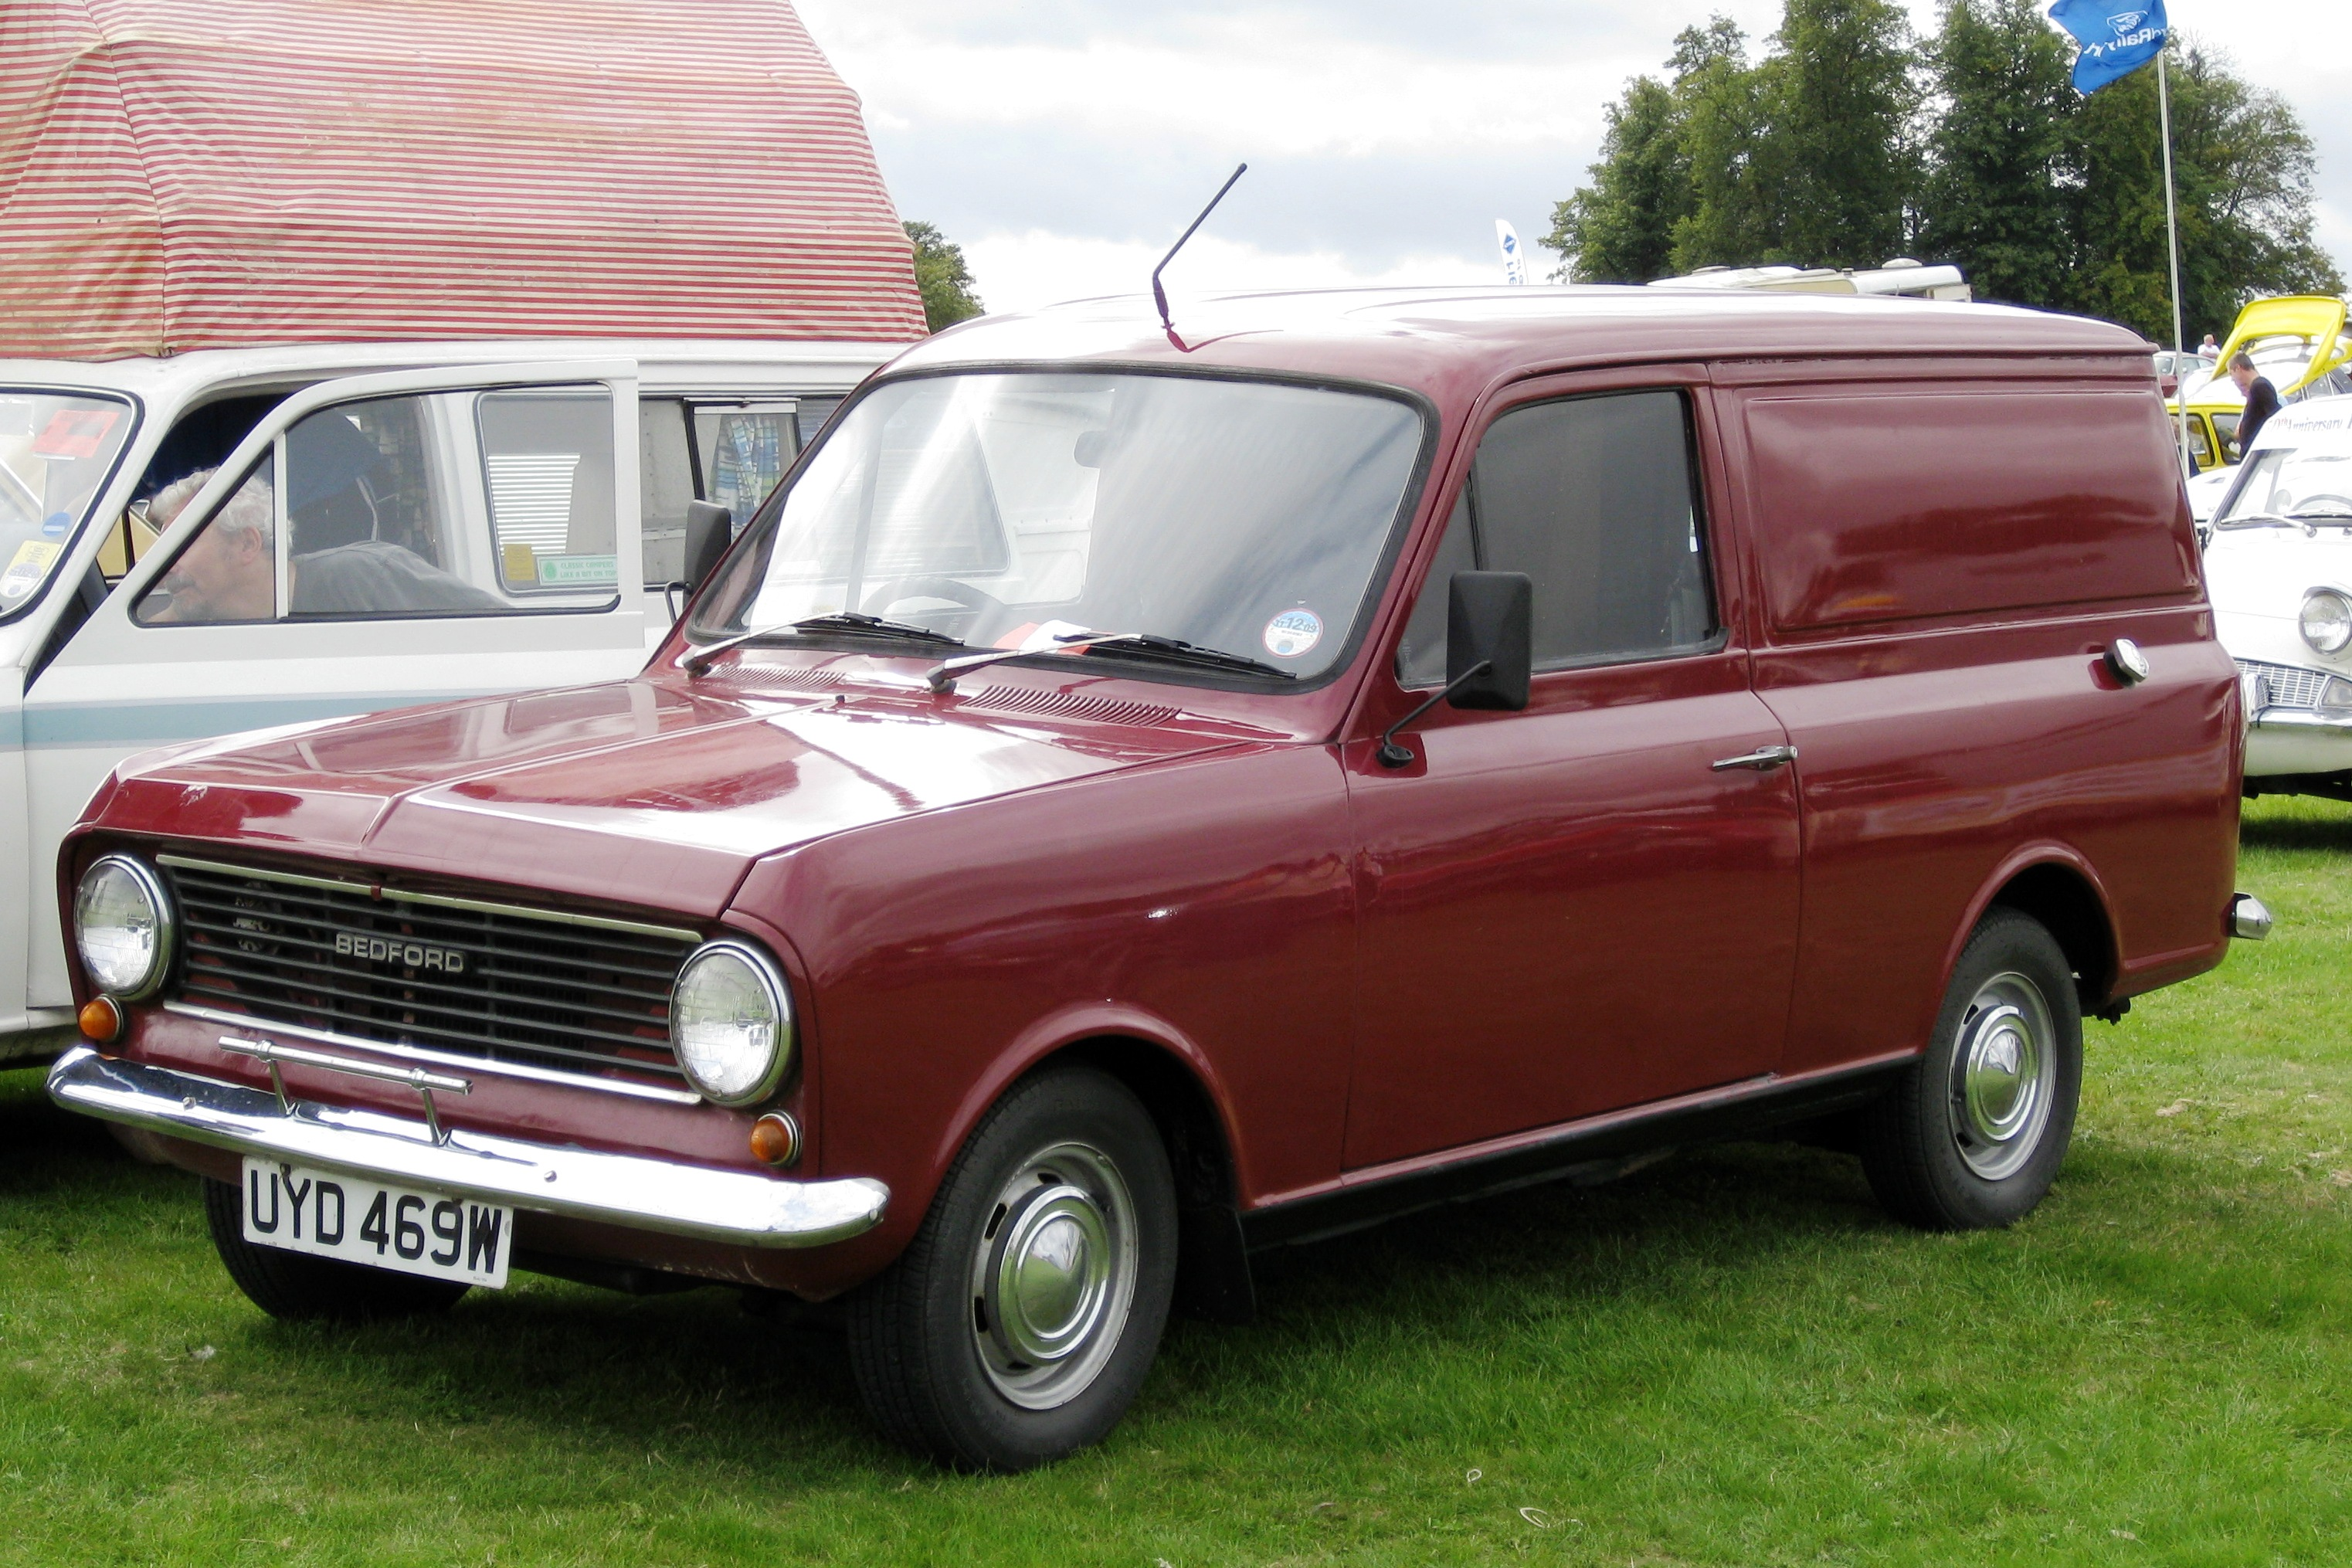 bedford by vauxhall